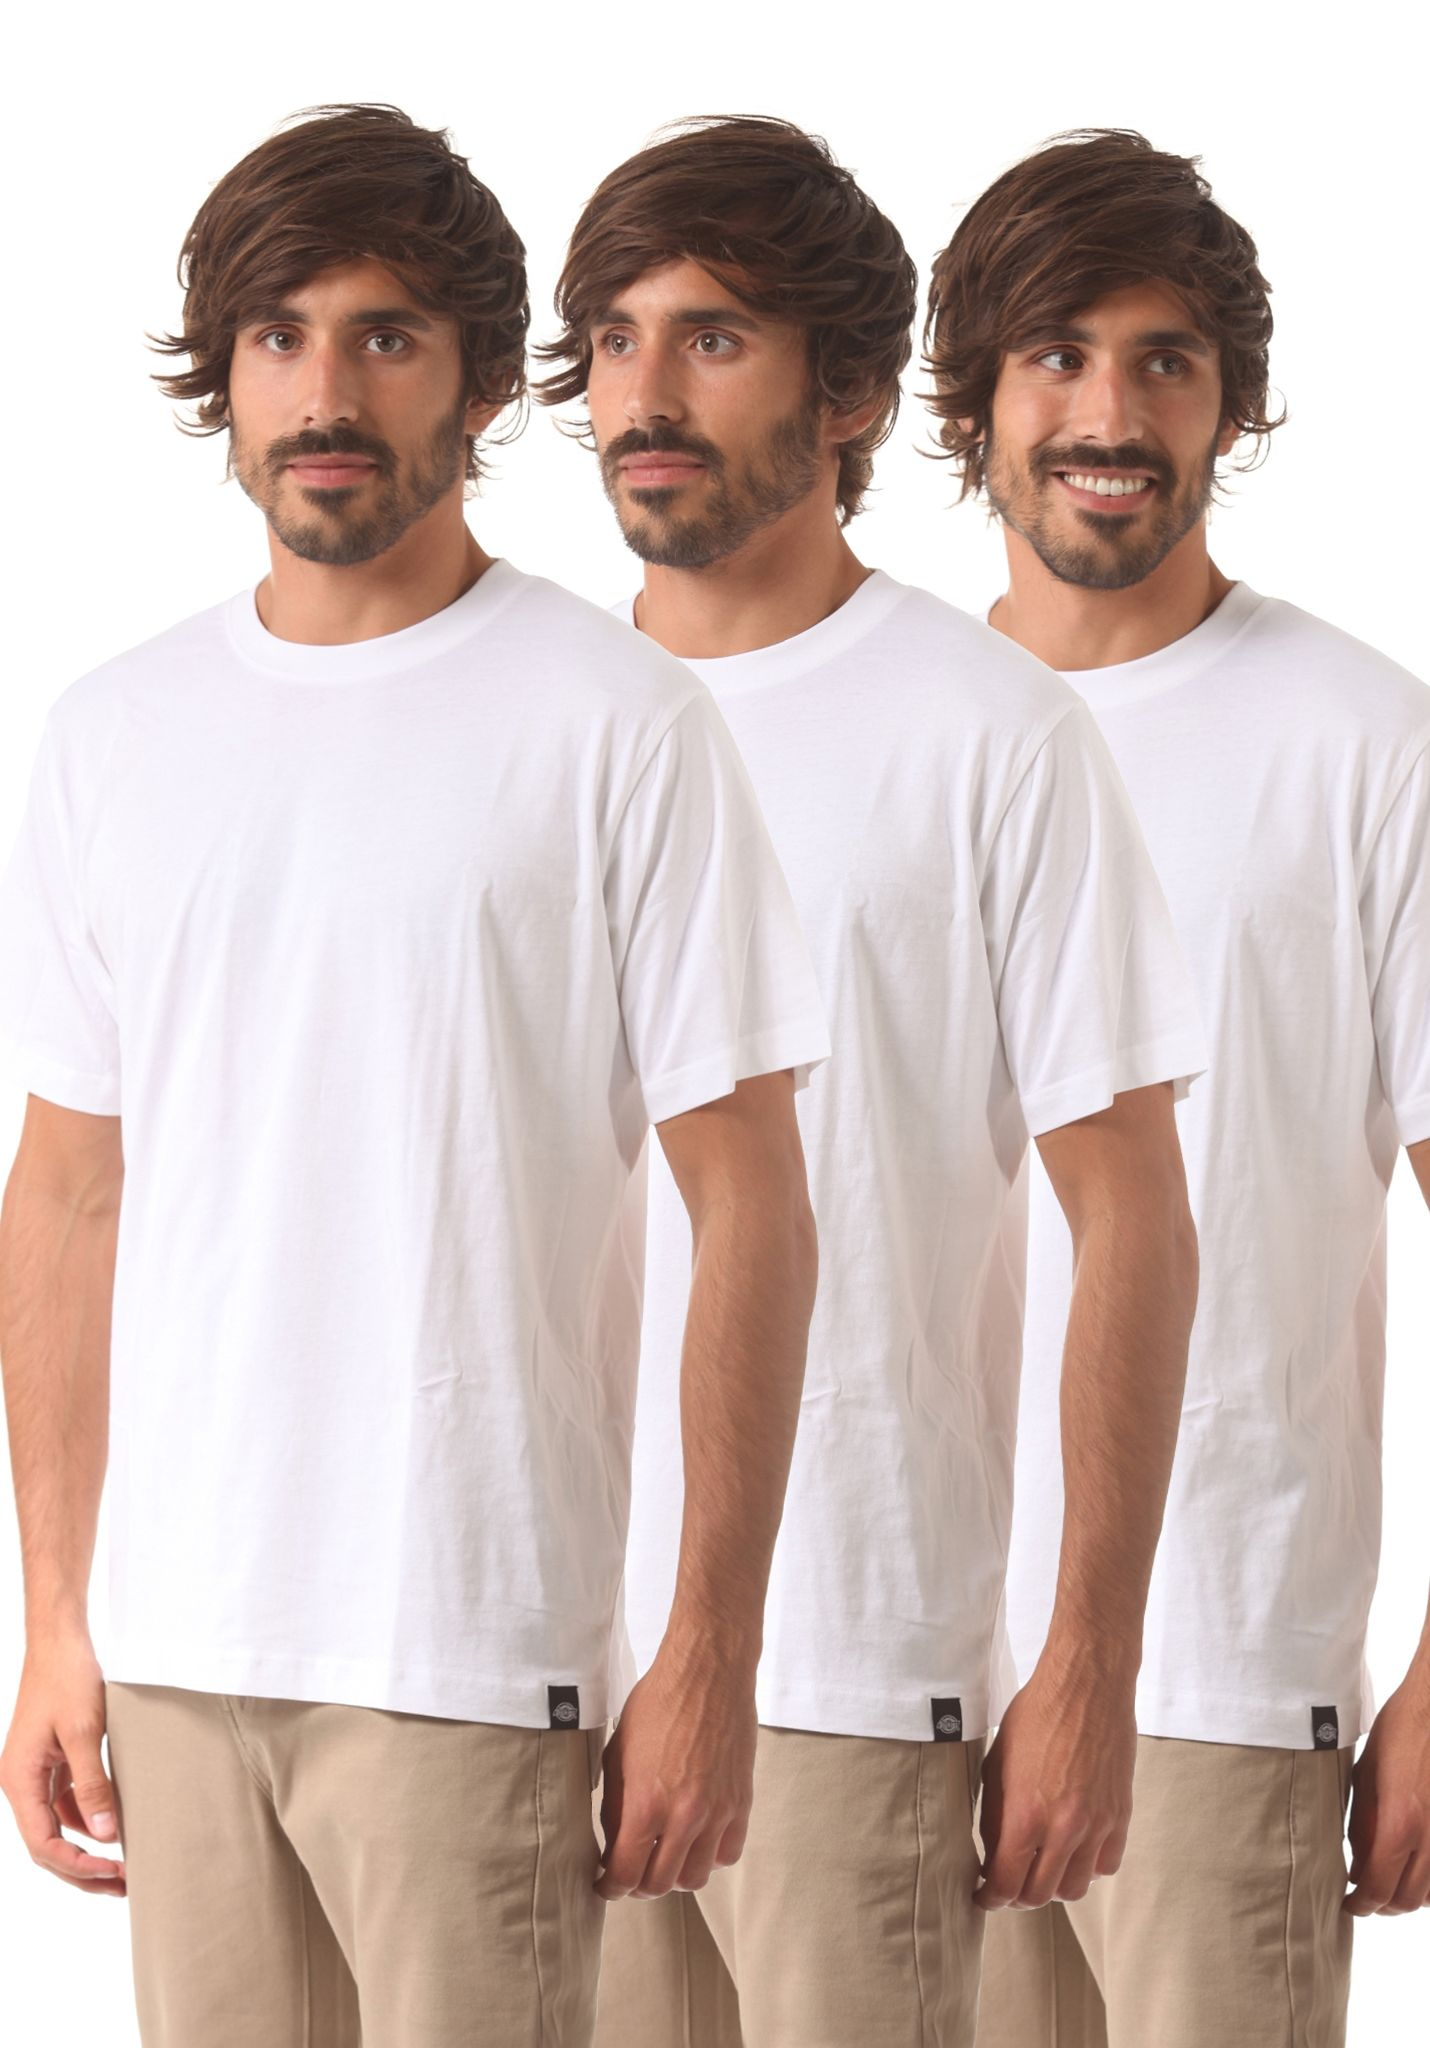 Browse Sale Online Mens T-Shirt Pack of 3 Dickies Sale Official Site Inexpensive Cheap Price Cheap Sale Prices From China Low Shipping Fee UCG6nk